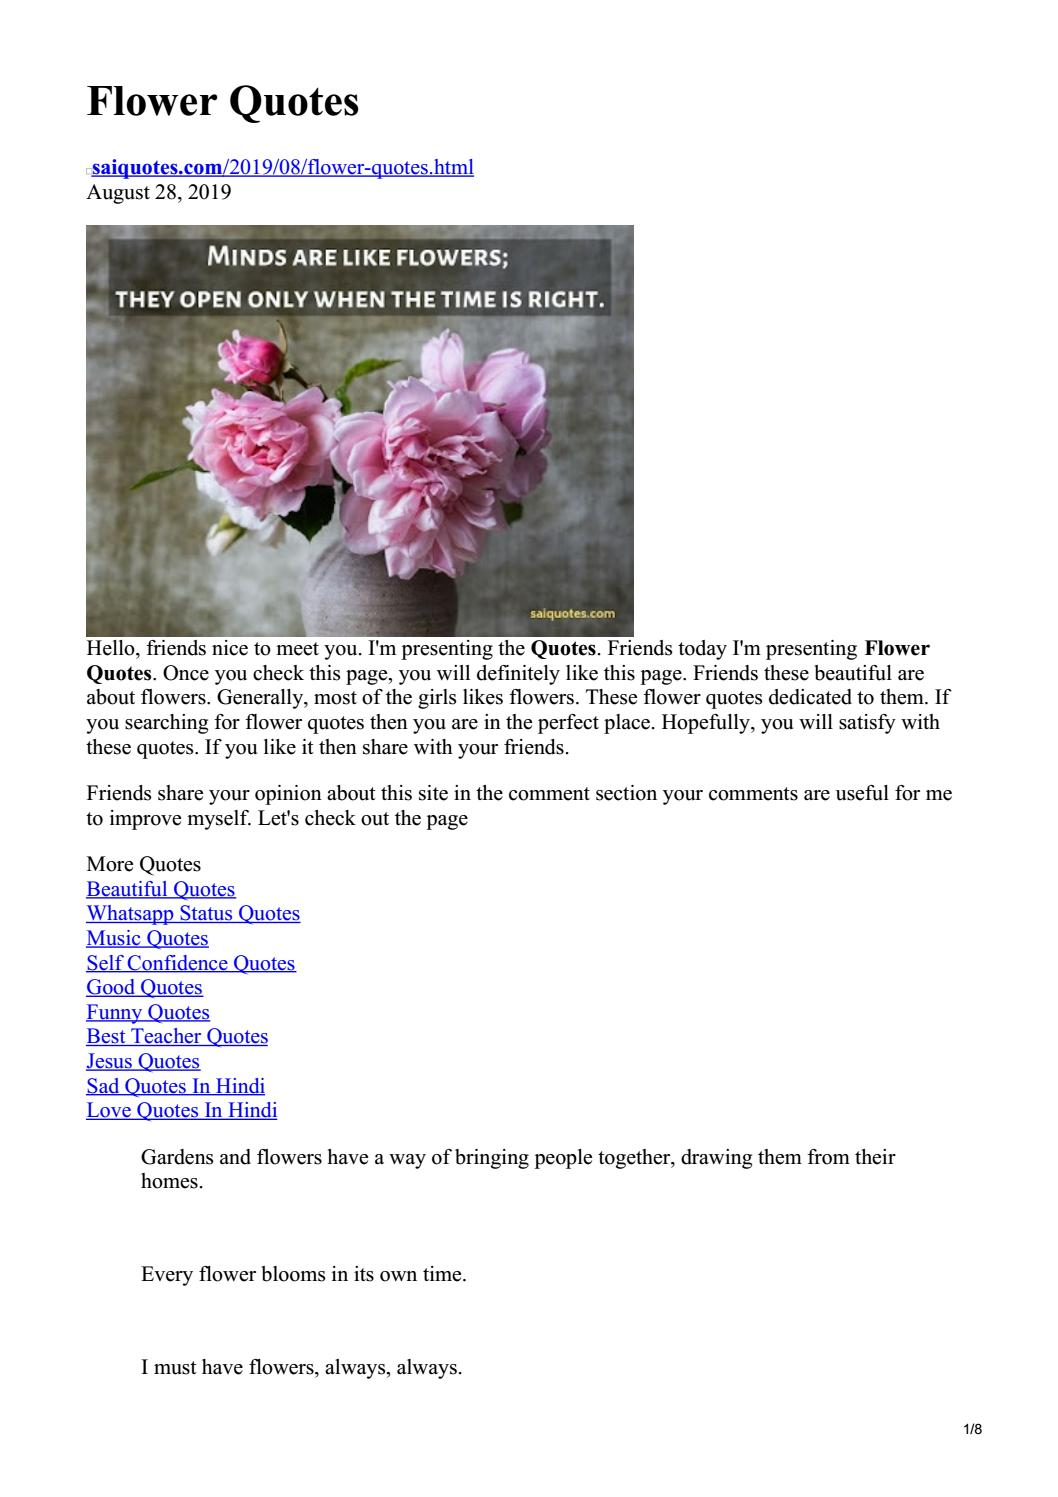 flower quotes by saiquotes issuu